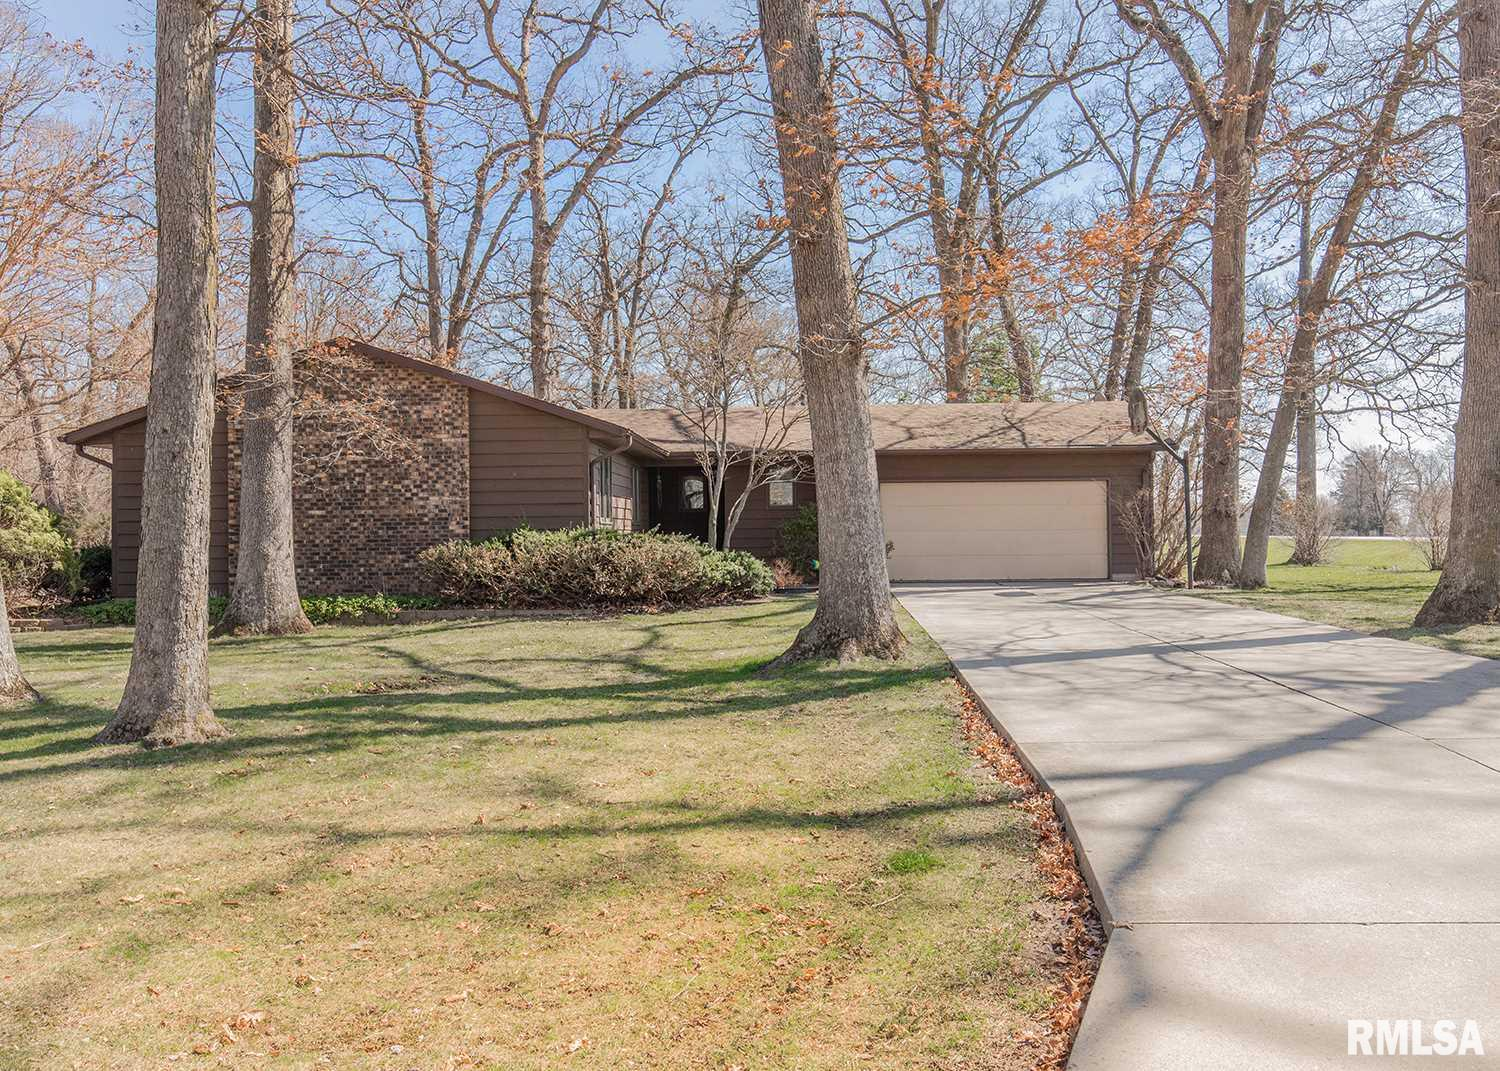 11690 82ND Property Photo - Blue Grass, IA real estate listing